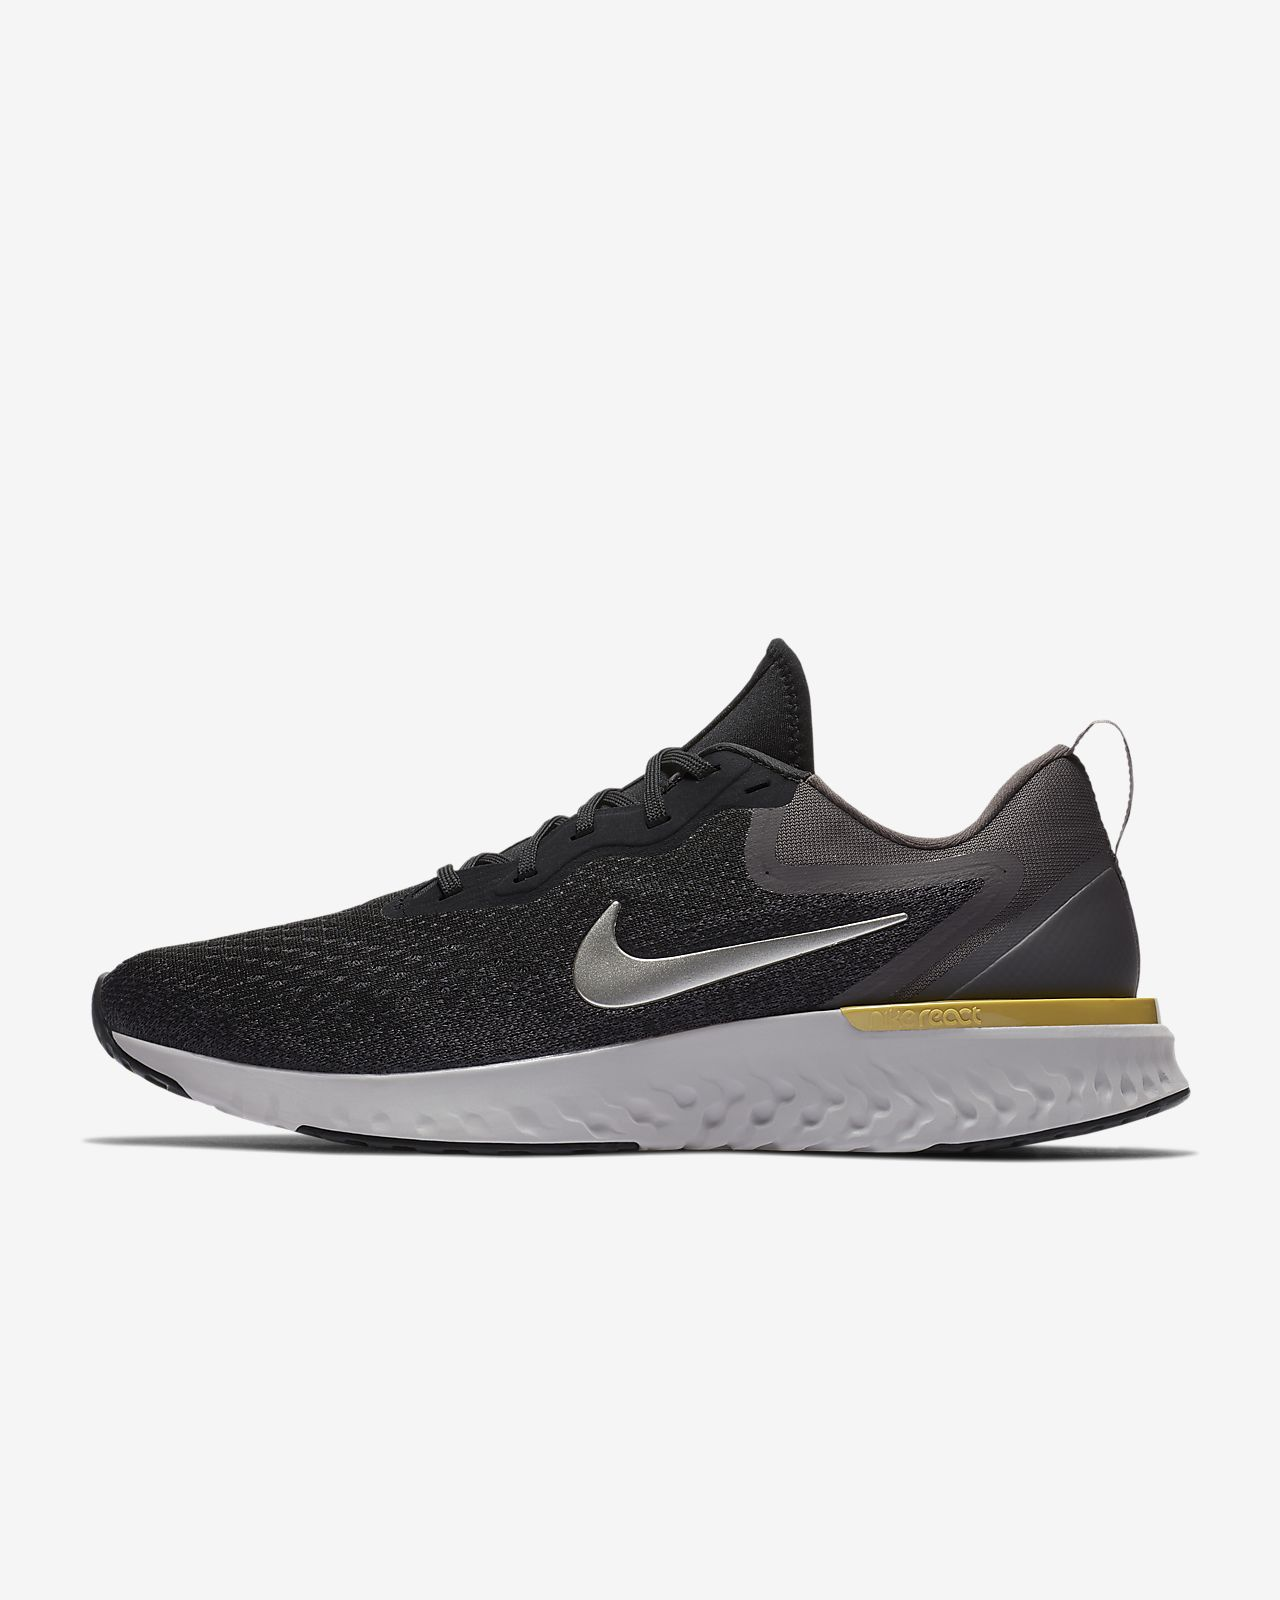 huge discount 0bb91 3509b ... coupon code for chaussure de running nike odyssey react pour homme  cefa3 7c4a4